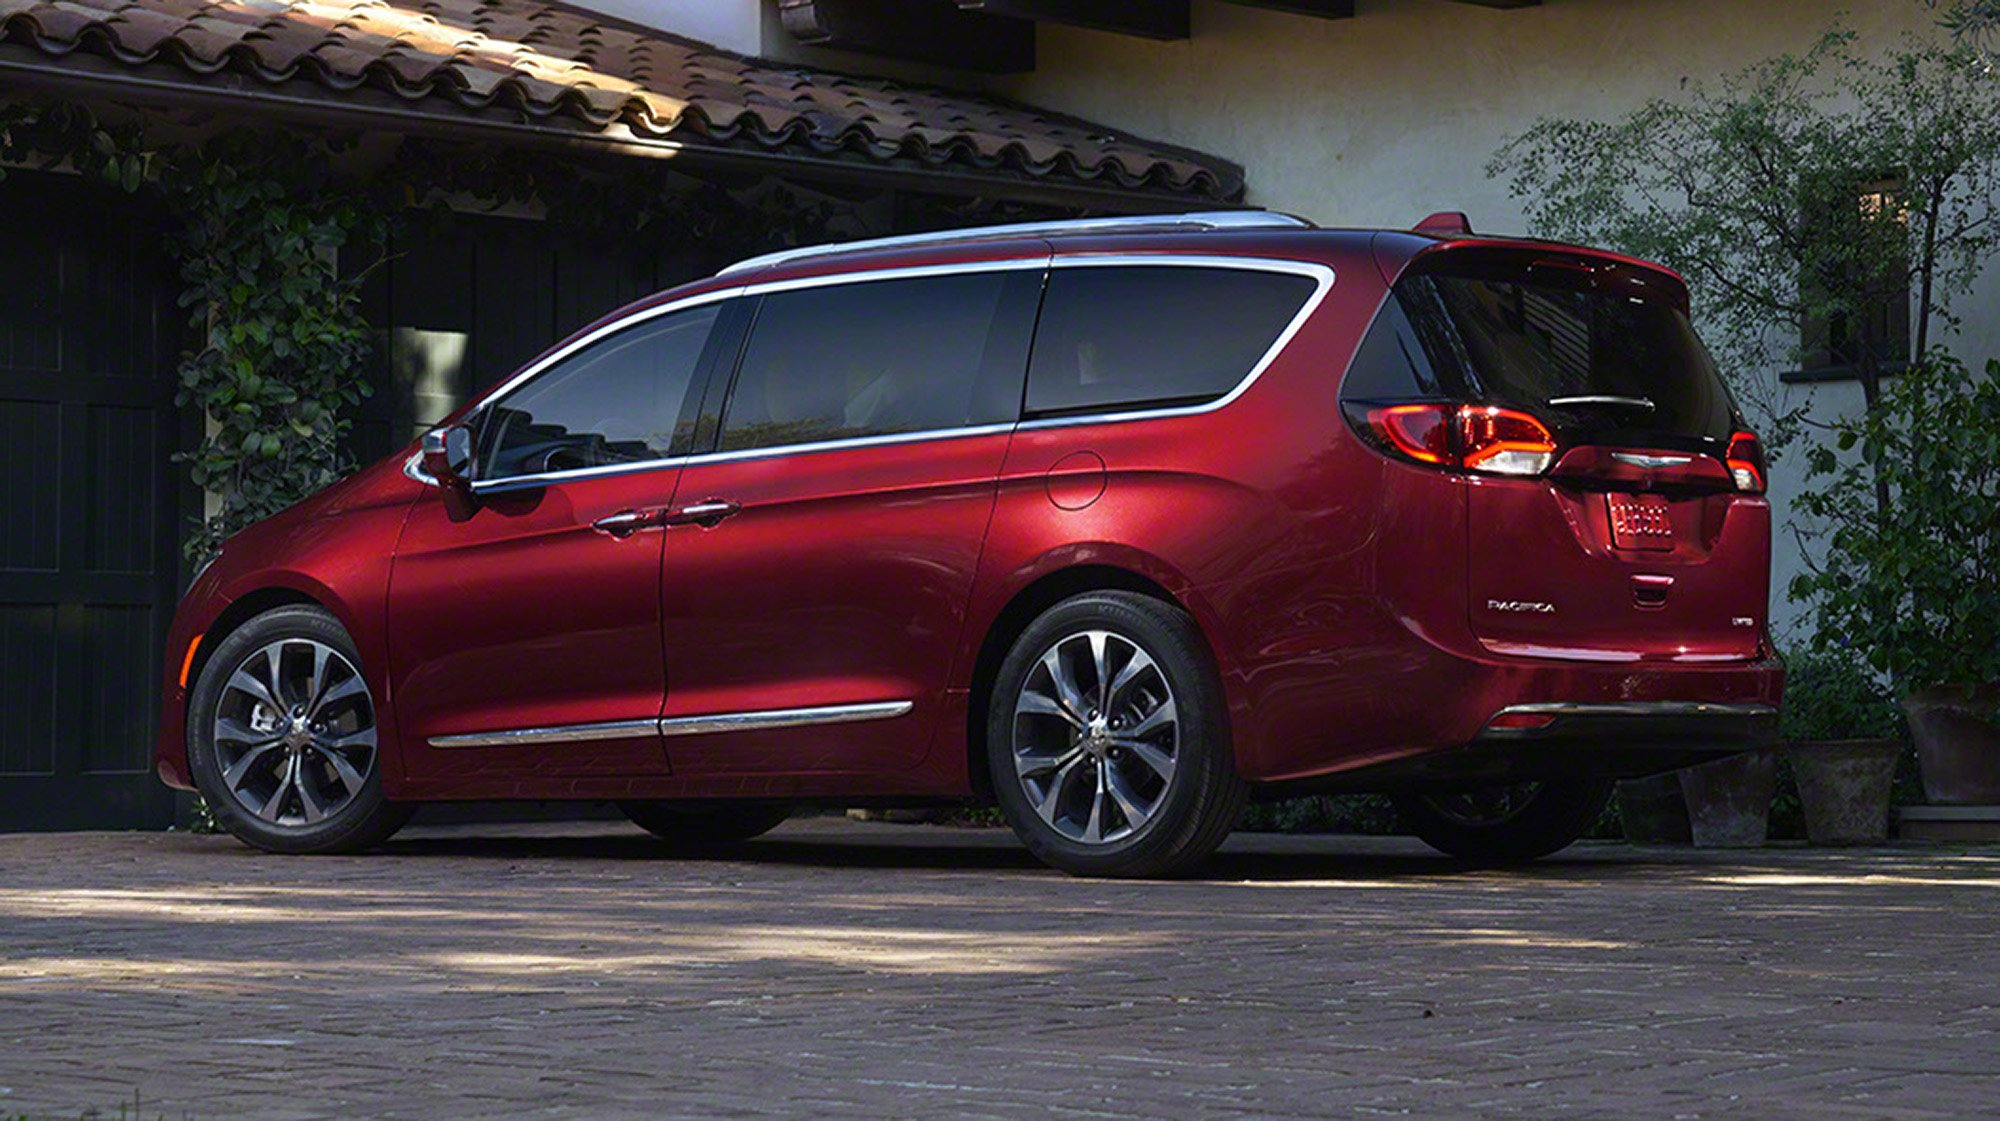 2016 chrysler pacifica grand voyager replacement appears in detroit photos 1 of 21. Black Bedroom Furniture Sets. Home Design Ideas